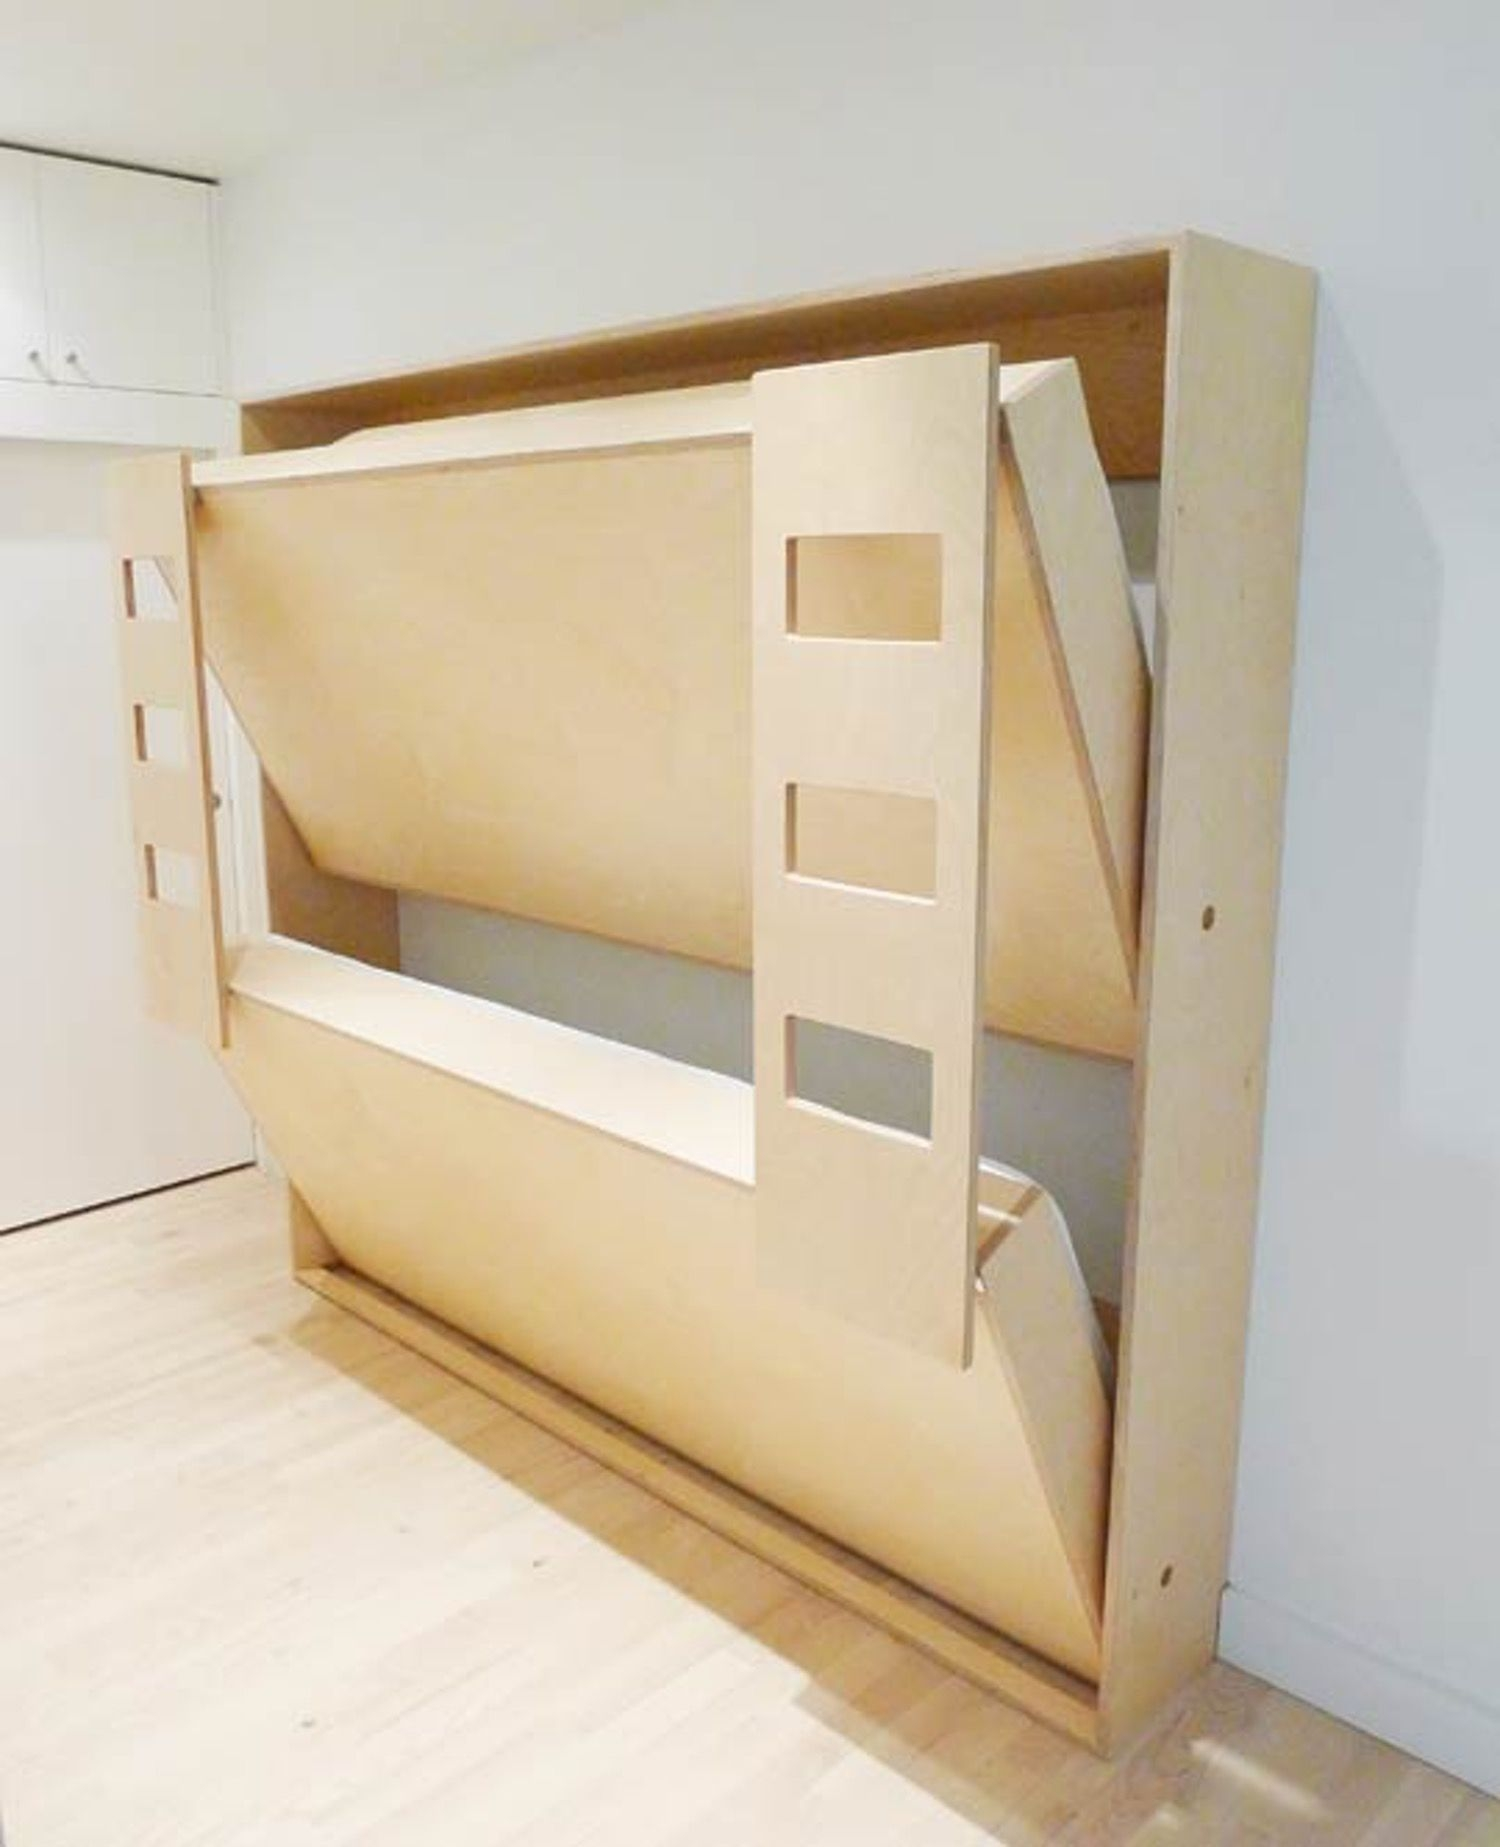 Moving Space-Saving Double Bunk Bed For Kids Room | Kidsomania